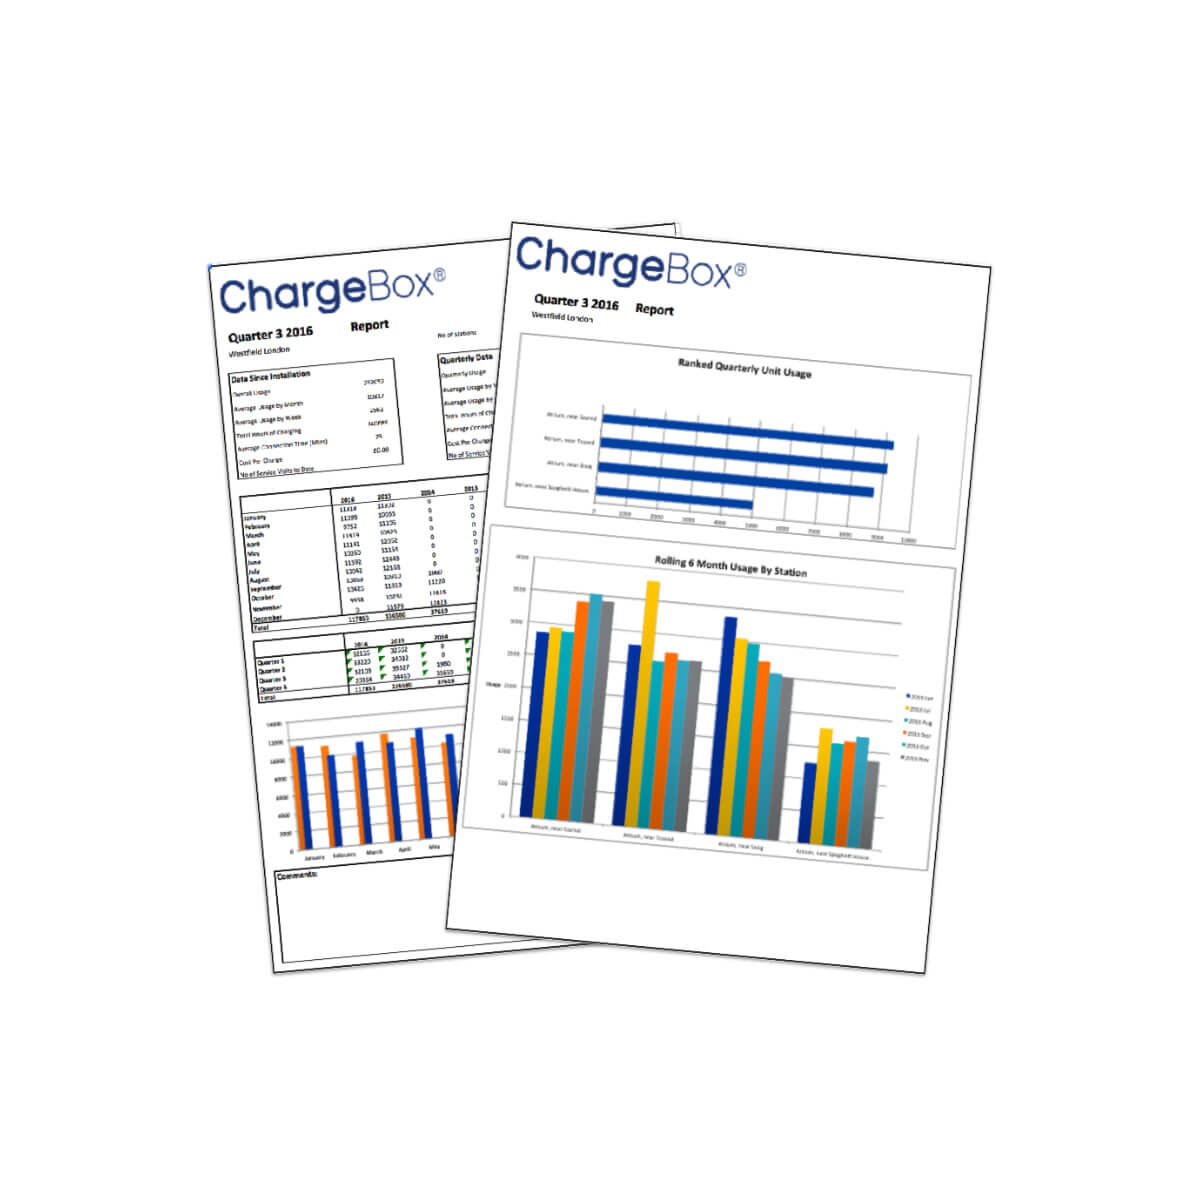 ChargeBox Managed Services Usage Reporting